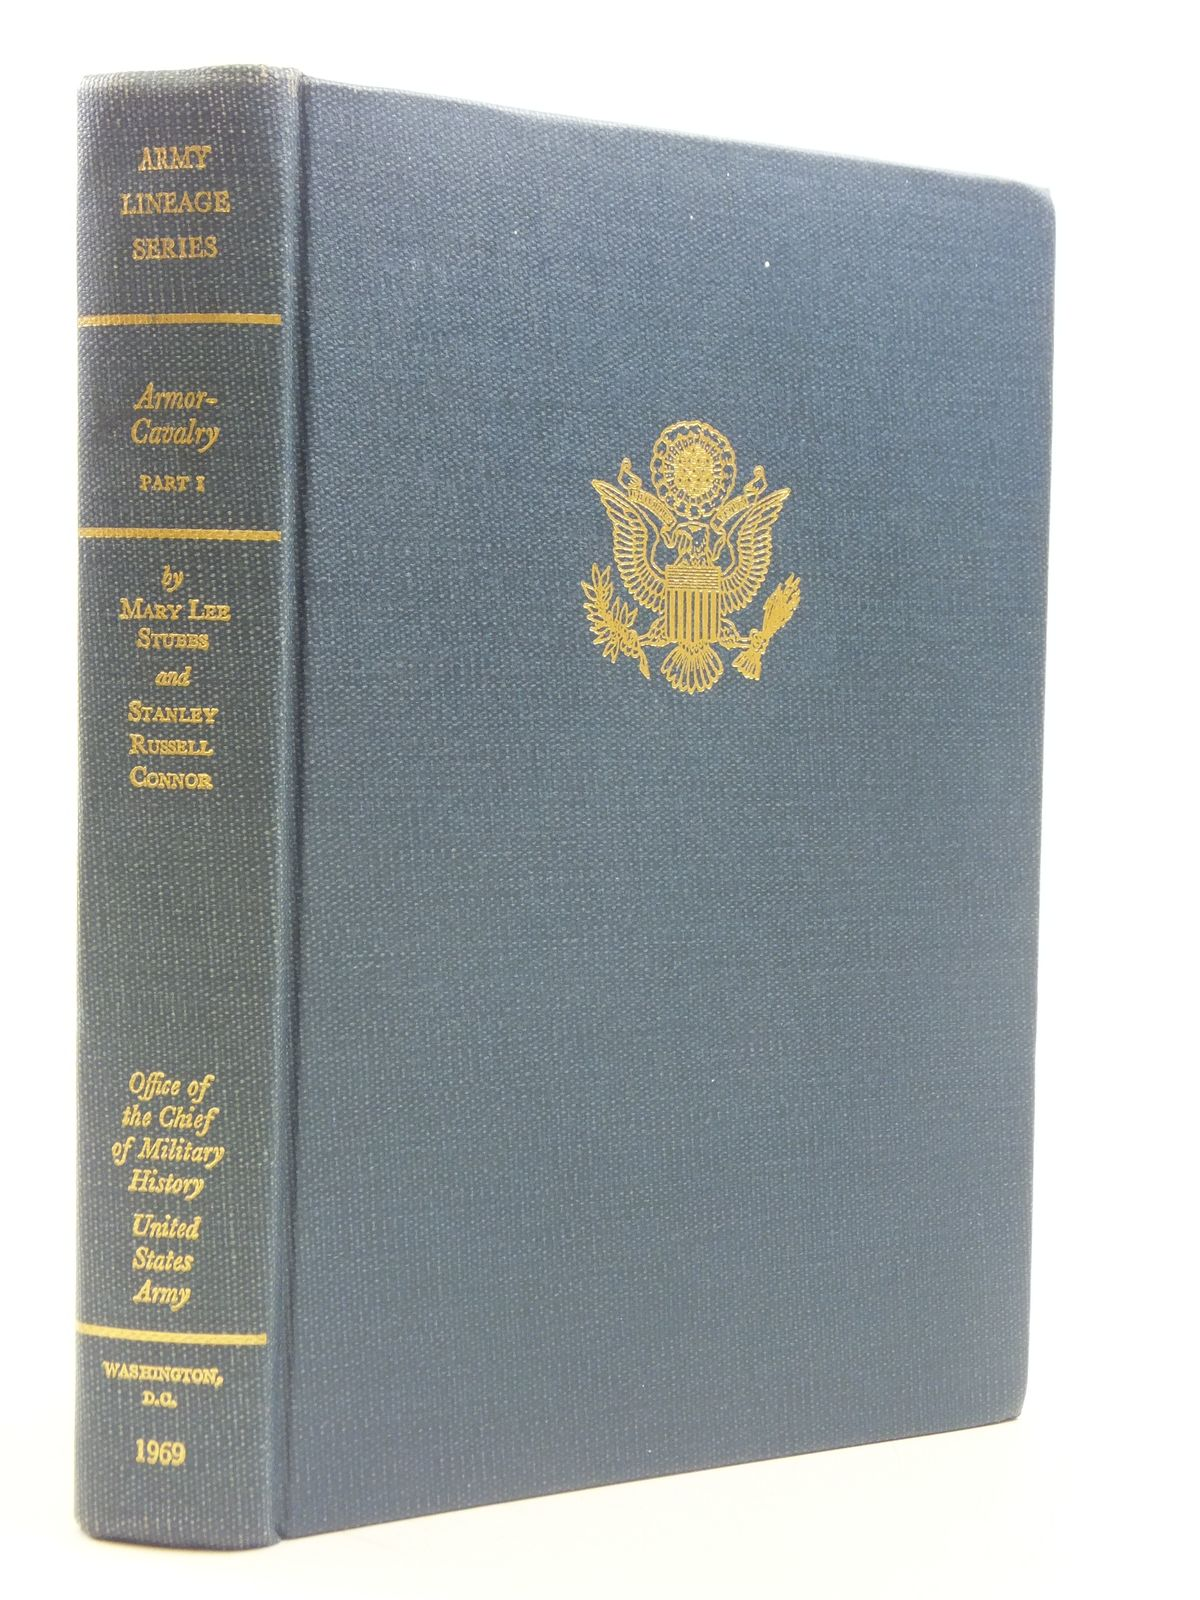 Photo of ARMOR-CAVLARY PART 1 REGULAR ARMY AND ARMY RESERVE written by Stubbs, Mary Lee Connor, Stanley Russell published by Office Of The Chief Of Military History United States Army (STOCK CODE: 1605321)  for sale by Stella & Rose's Books